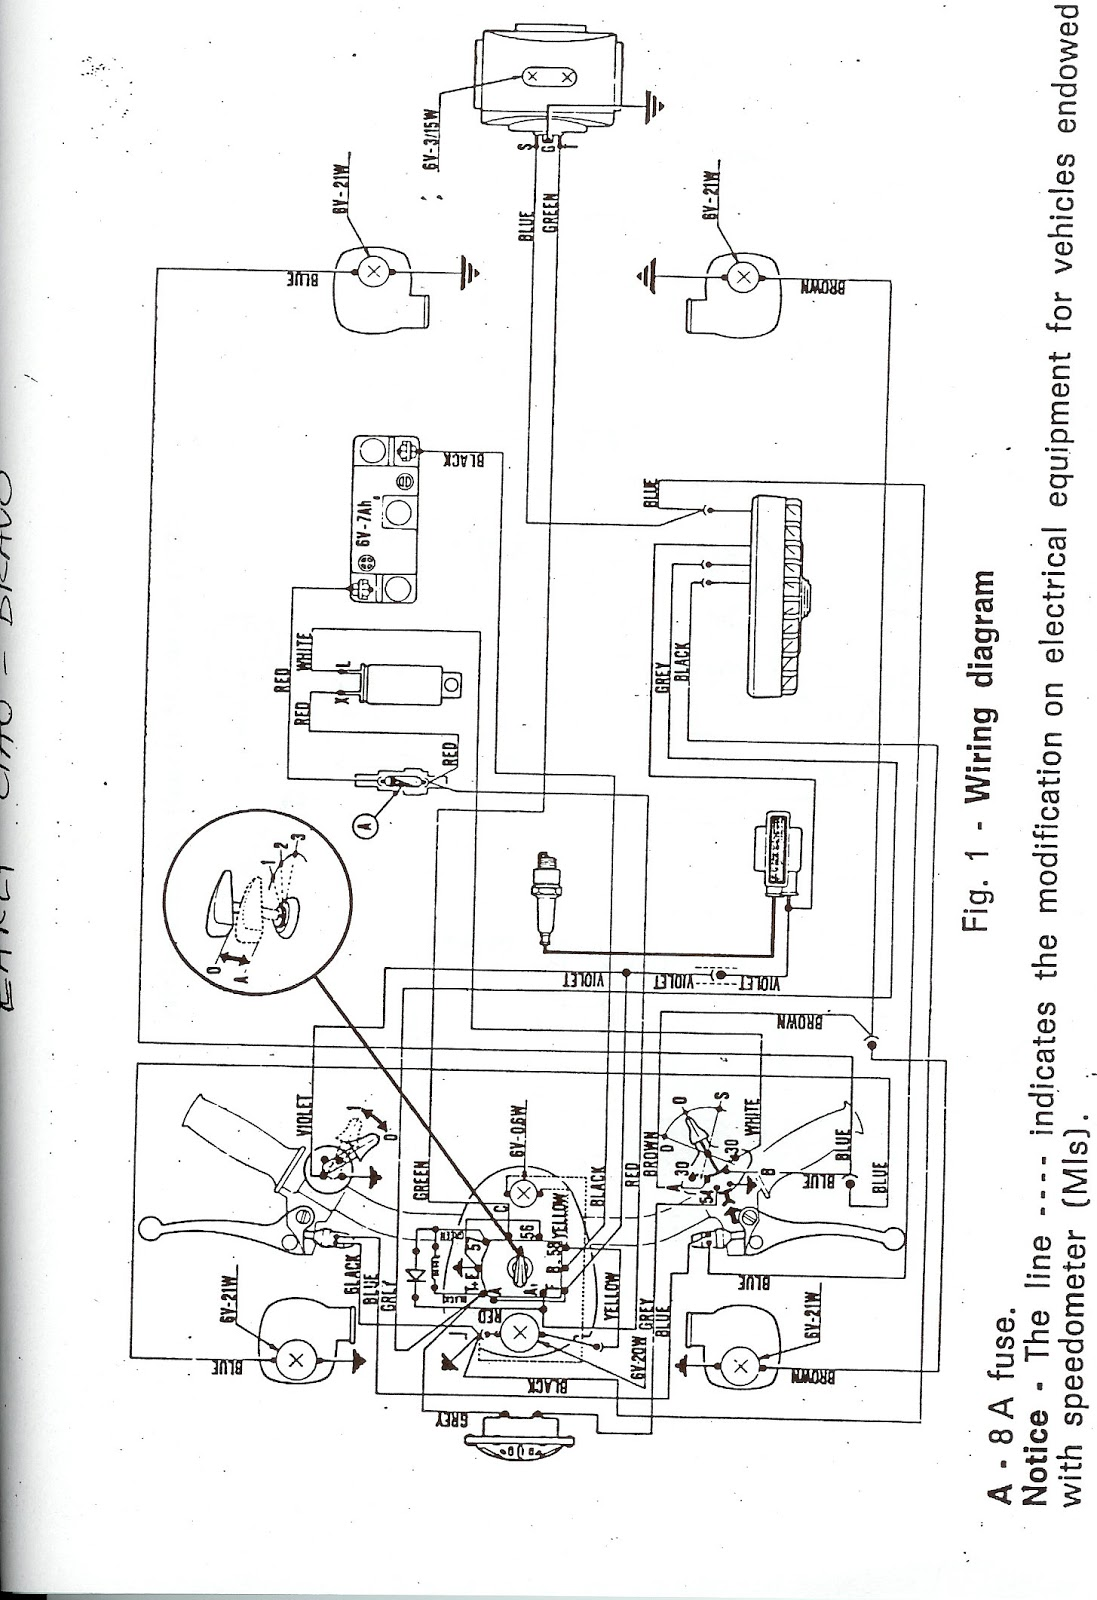 puch moped wiring diagram 25 wiring diagram images moped ignition diagram 50cc scooter wiring diagram [ 1097 x 1600 Pixel ]